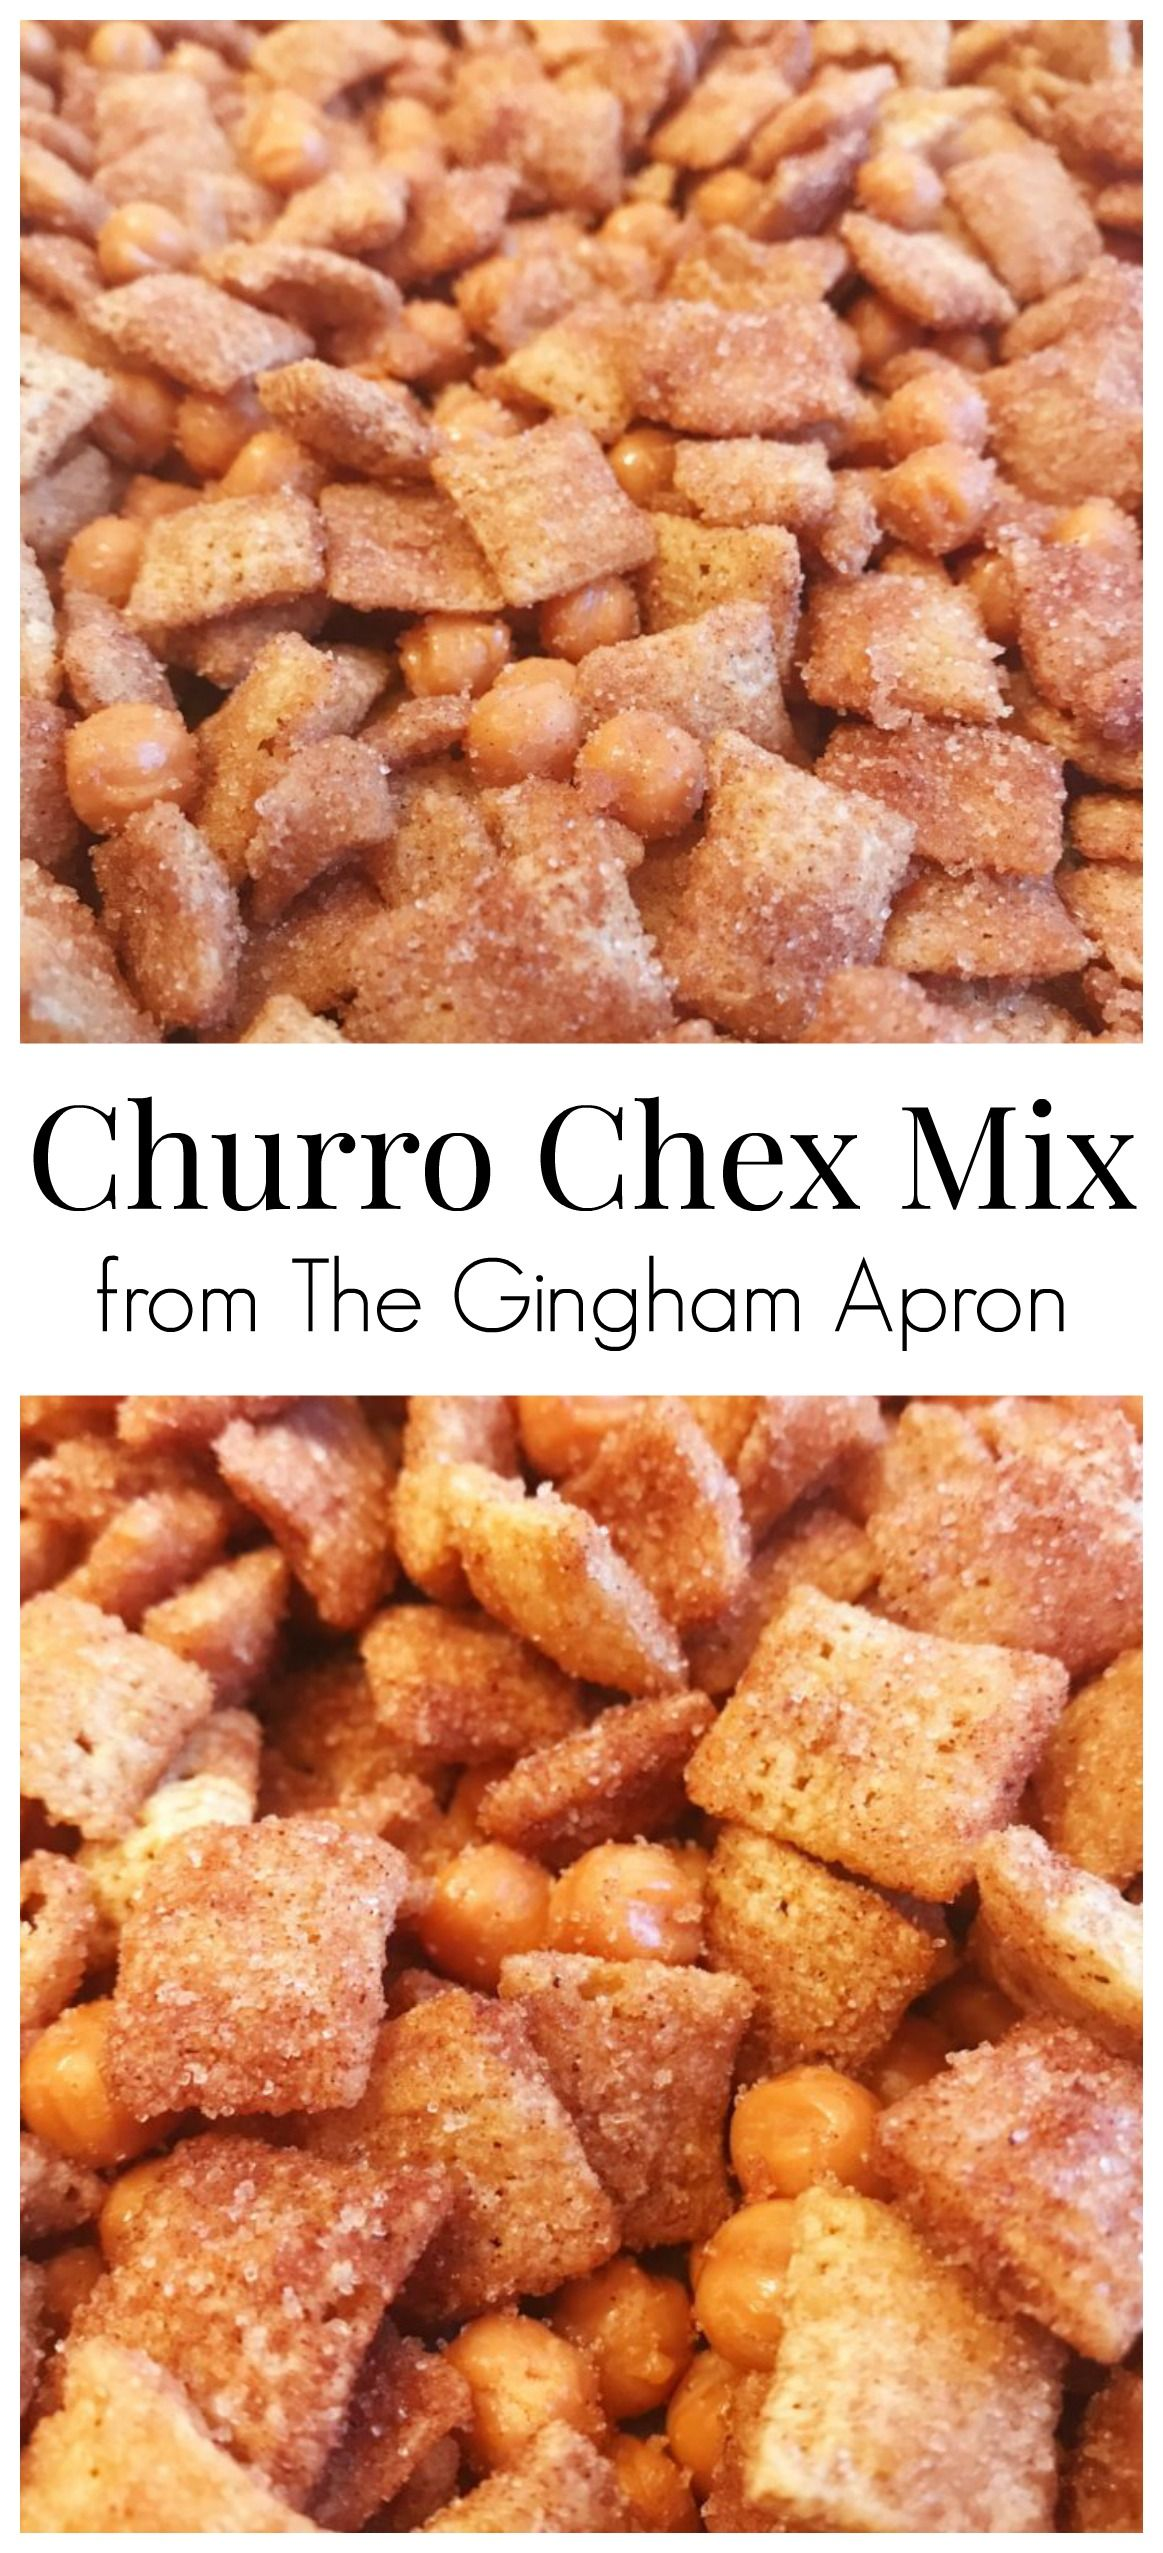 Photo of Churro Chex Mix With Caramels   The Gingham Apron